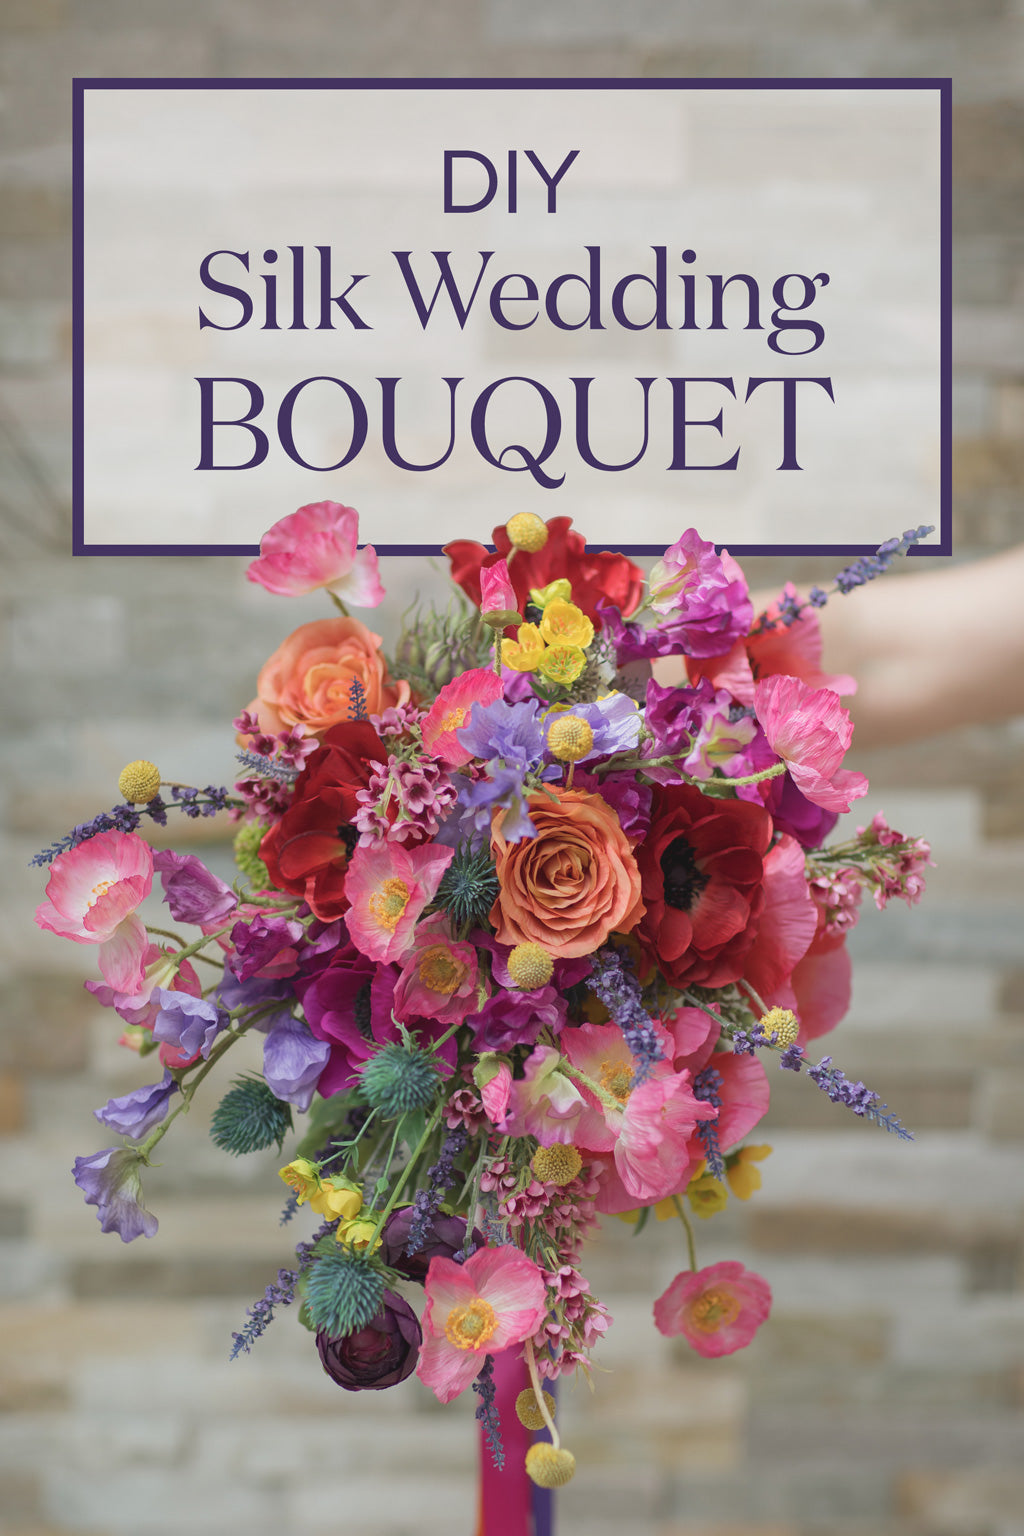 DIY Silk Wedding Bouquet